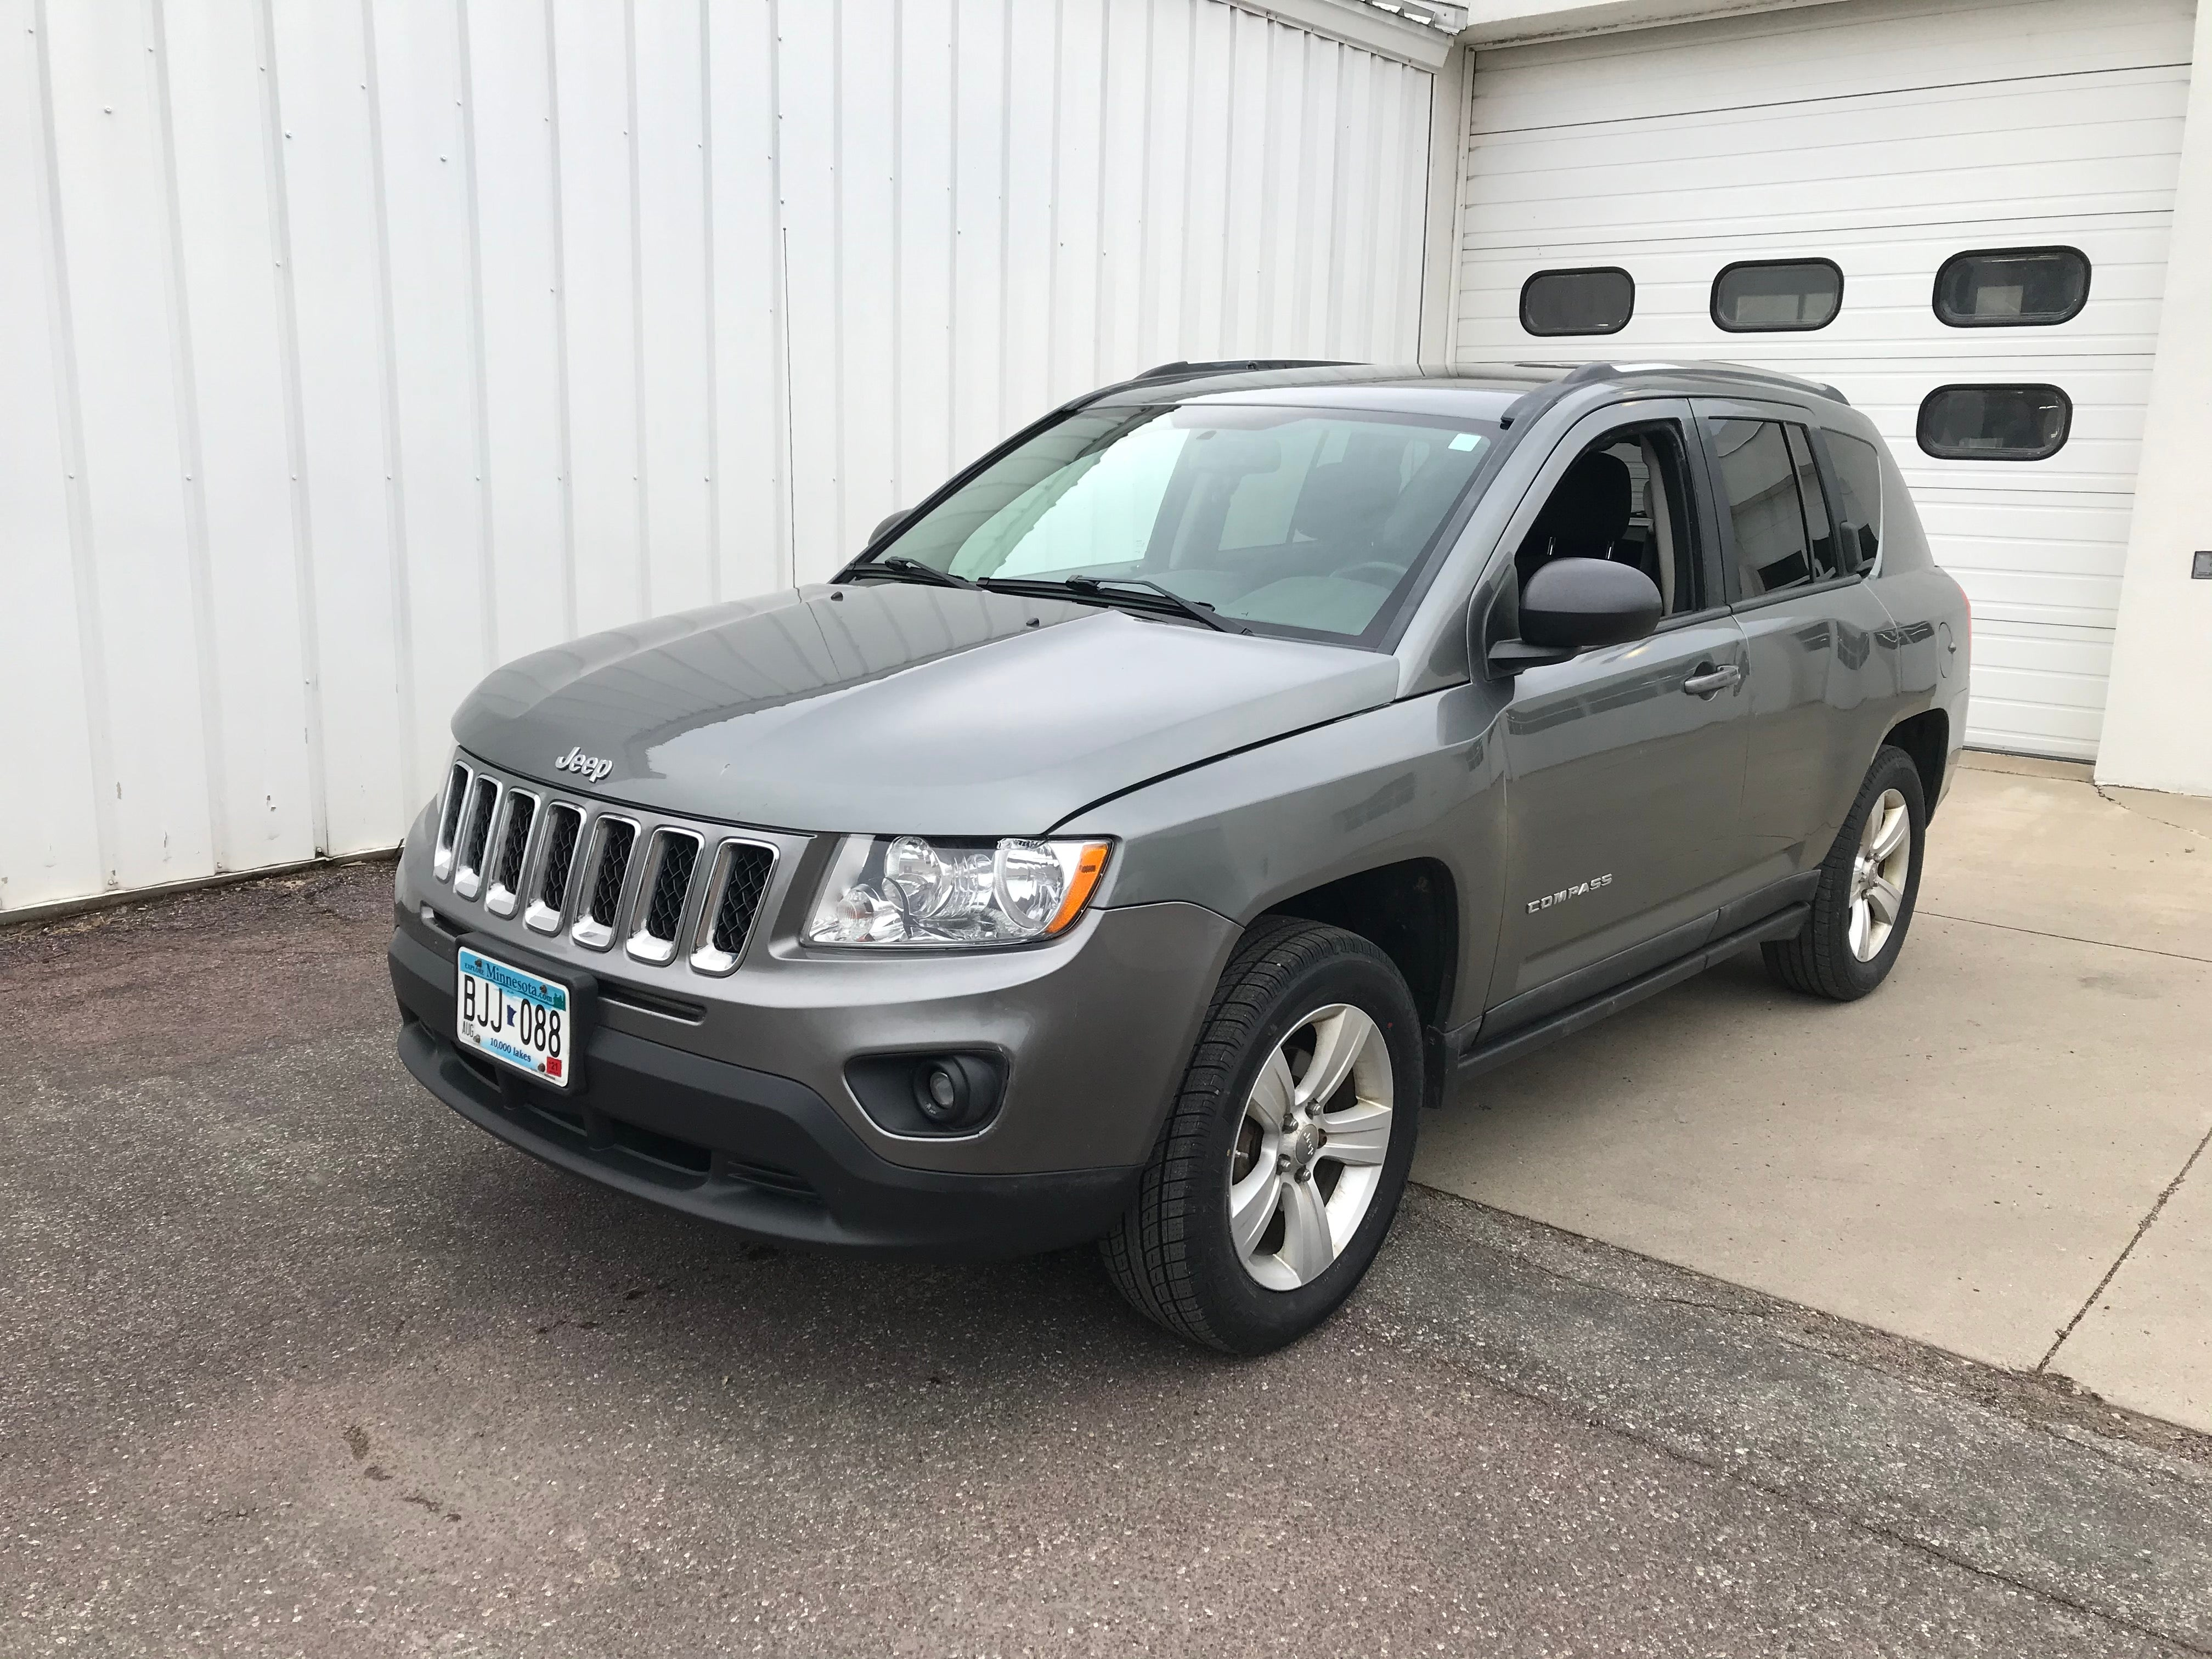 Used 2011 Jeep Compass Latitude with VIN 1J4NF1FB4BD263813 for sale in Arlington, Minnesota